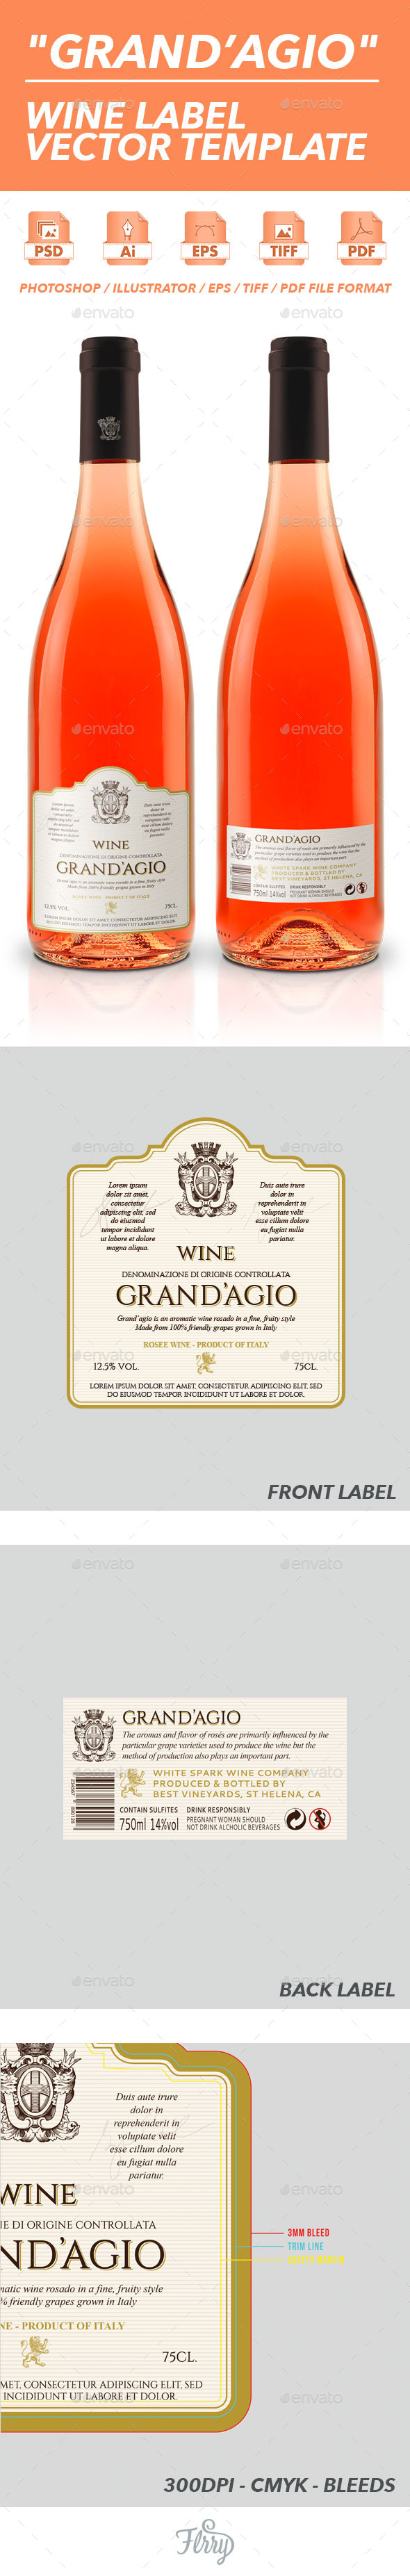 GraphicRiver Grand Agio Wine Label Vector Template 10595108